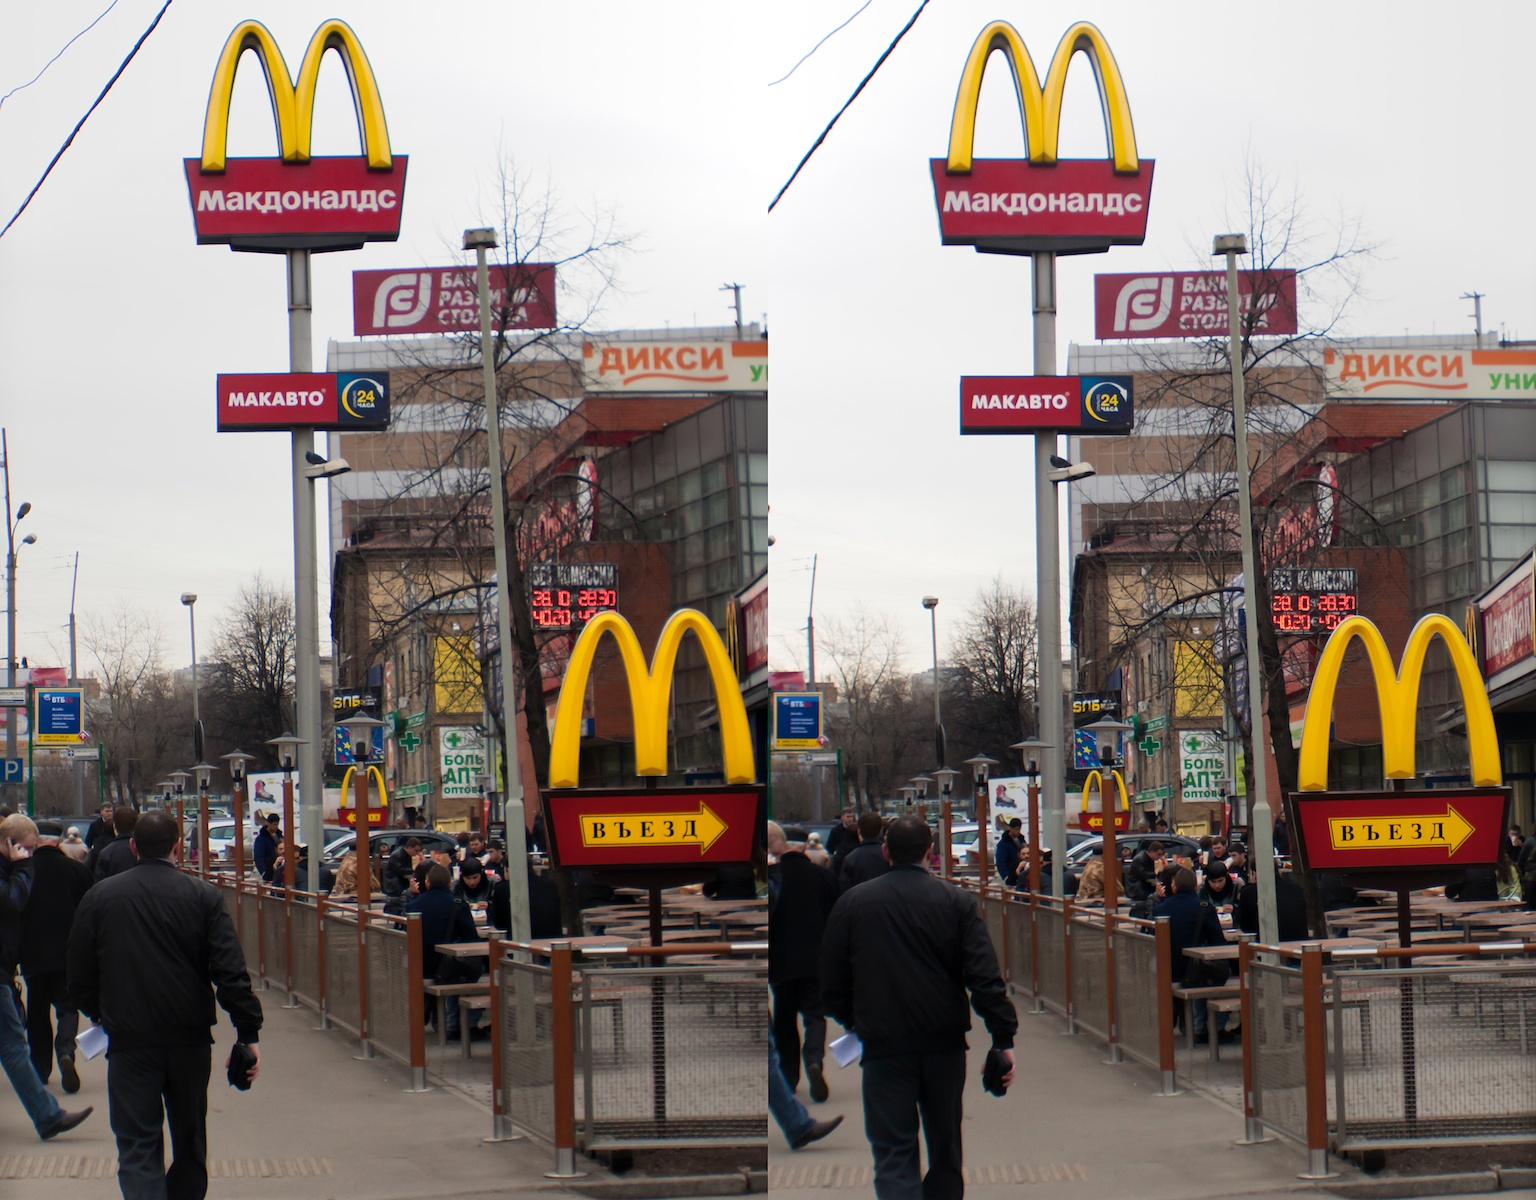 2011 стерео stereo McDonalds at Elektrozavodskaya metro station, Электрозаводская, Shot with Loreo 3D lens In A Cap and Canon 5D mark 2